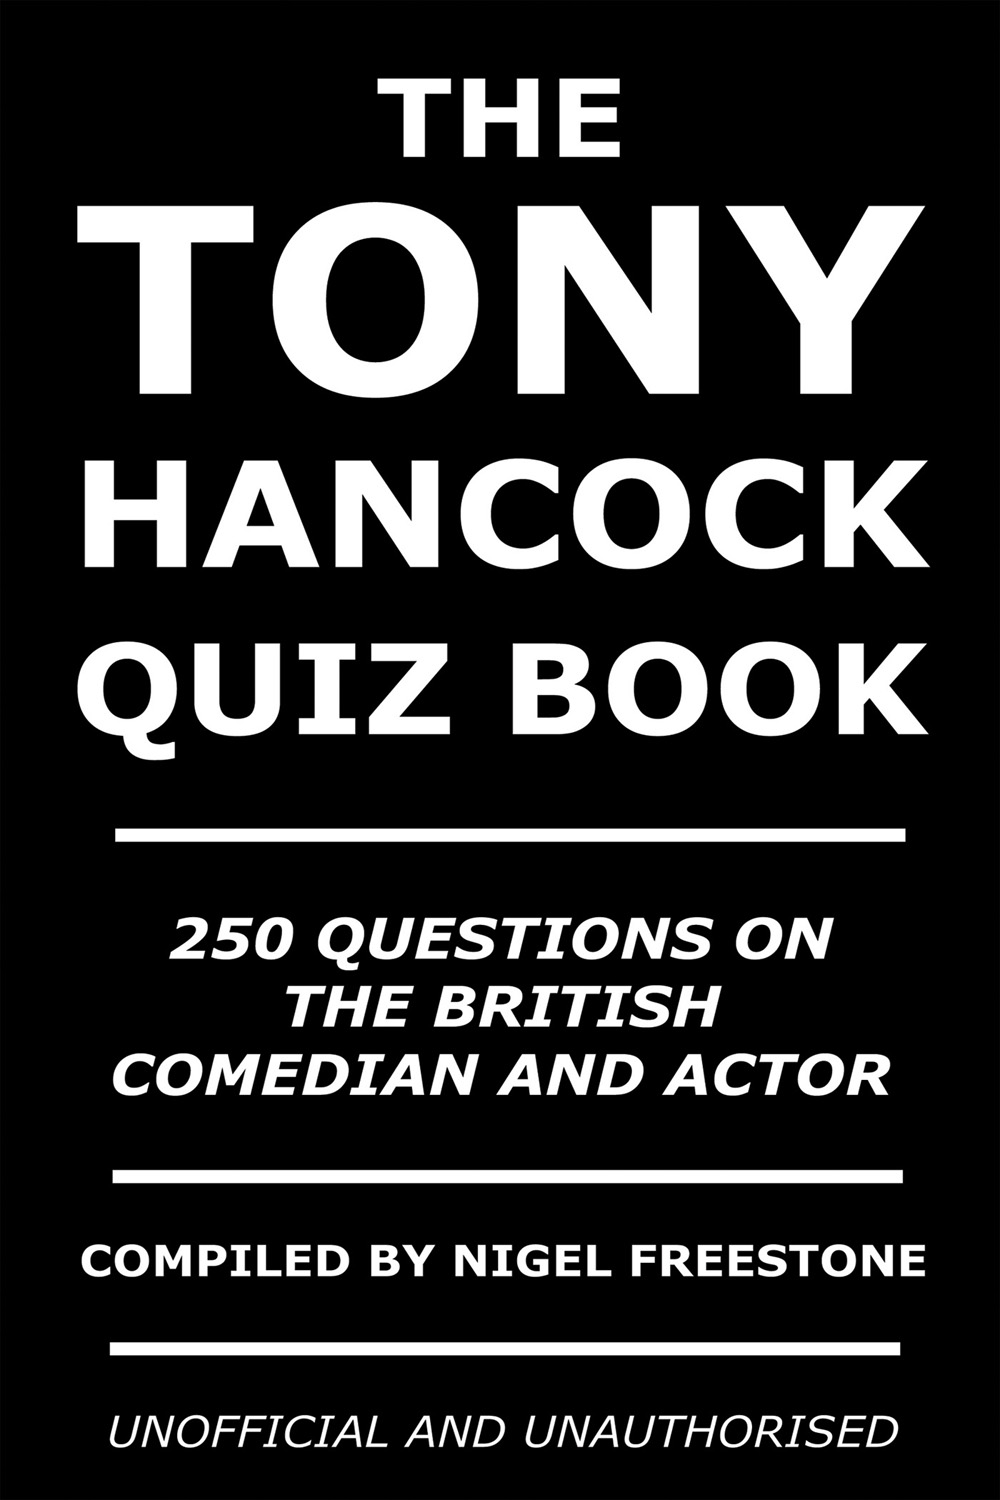 The Tony Hancock Quiz Book